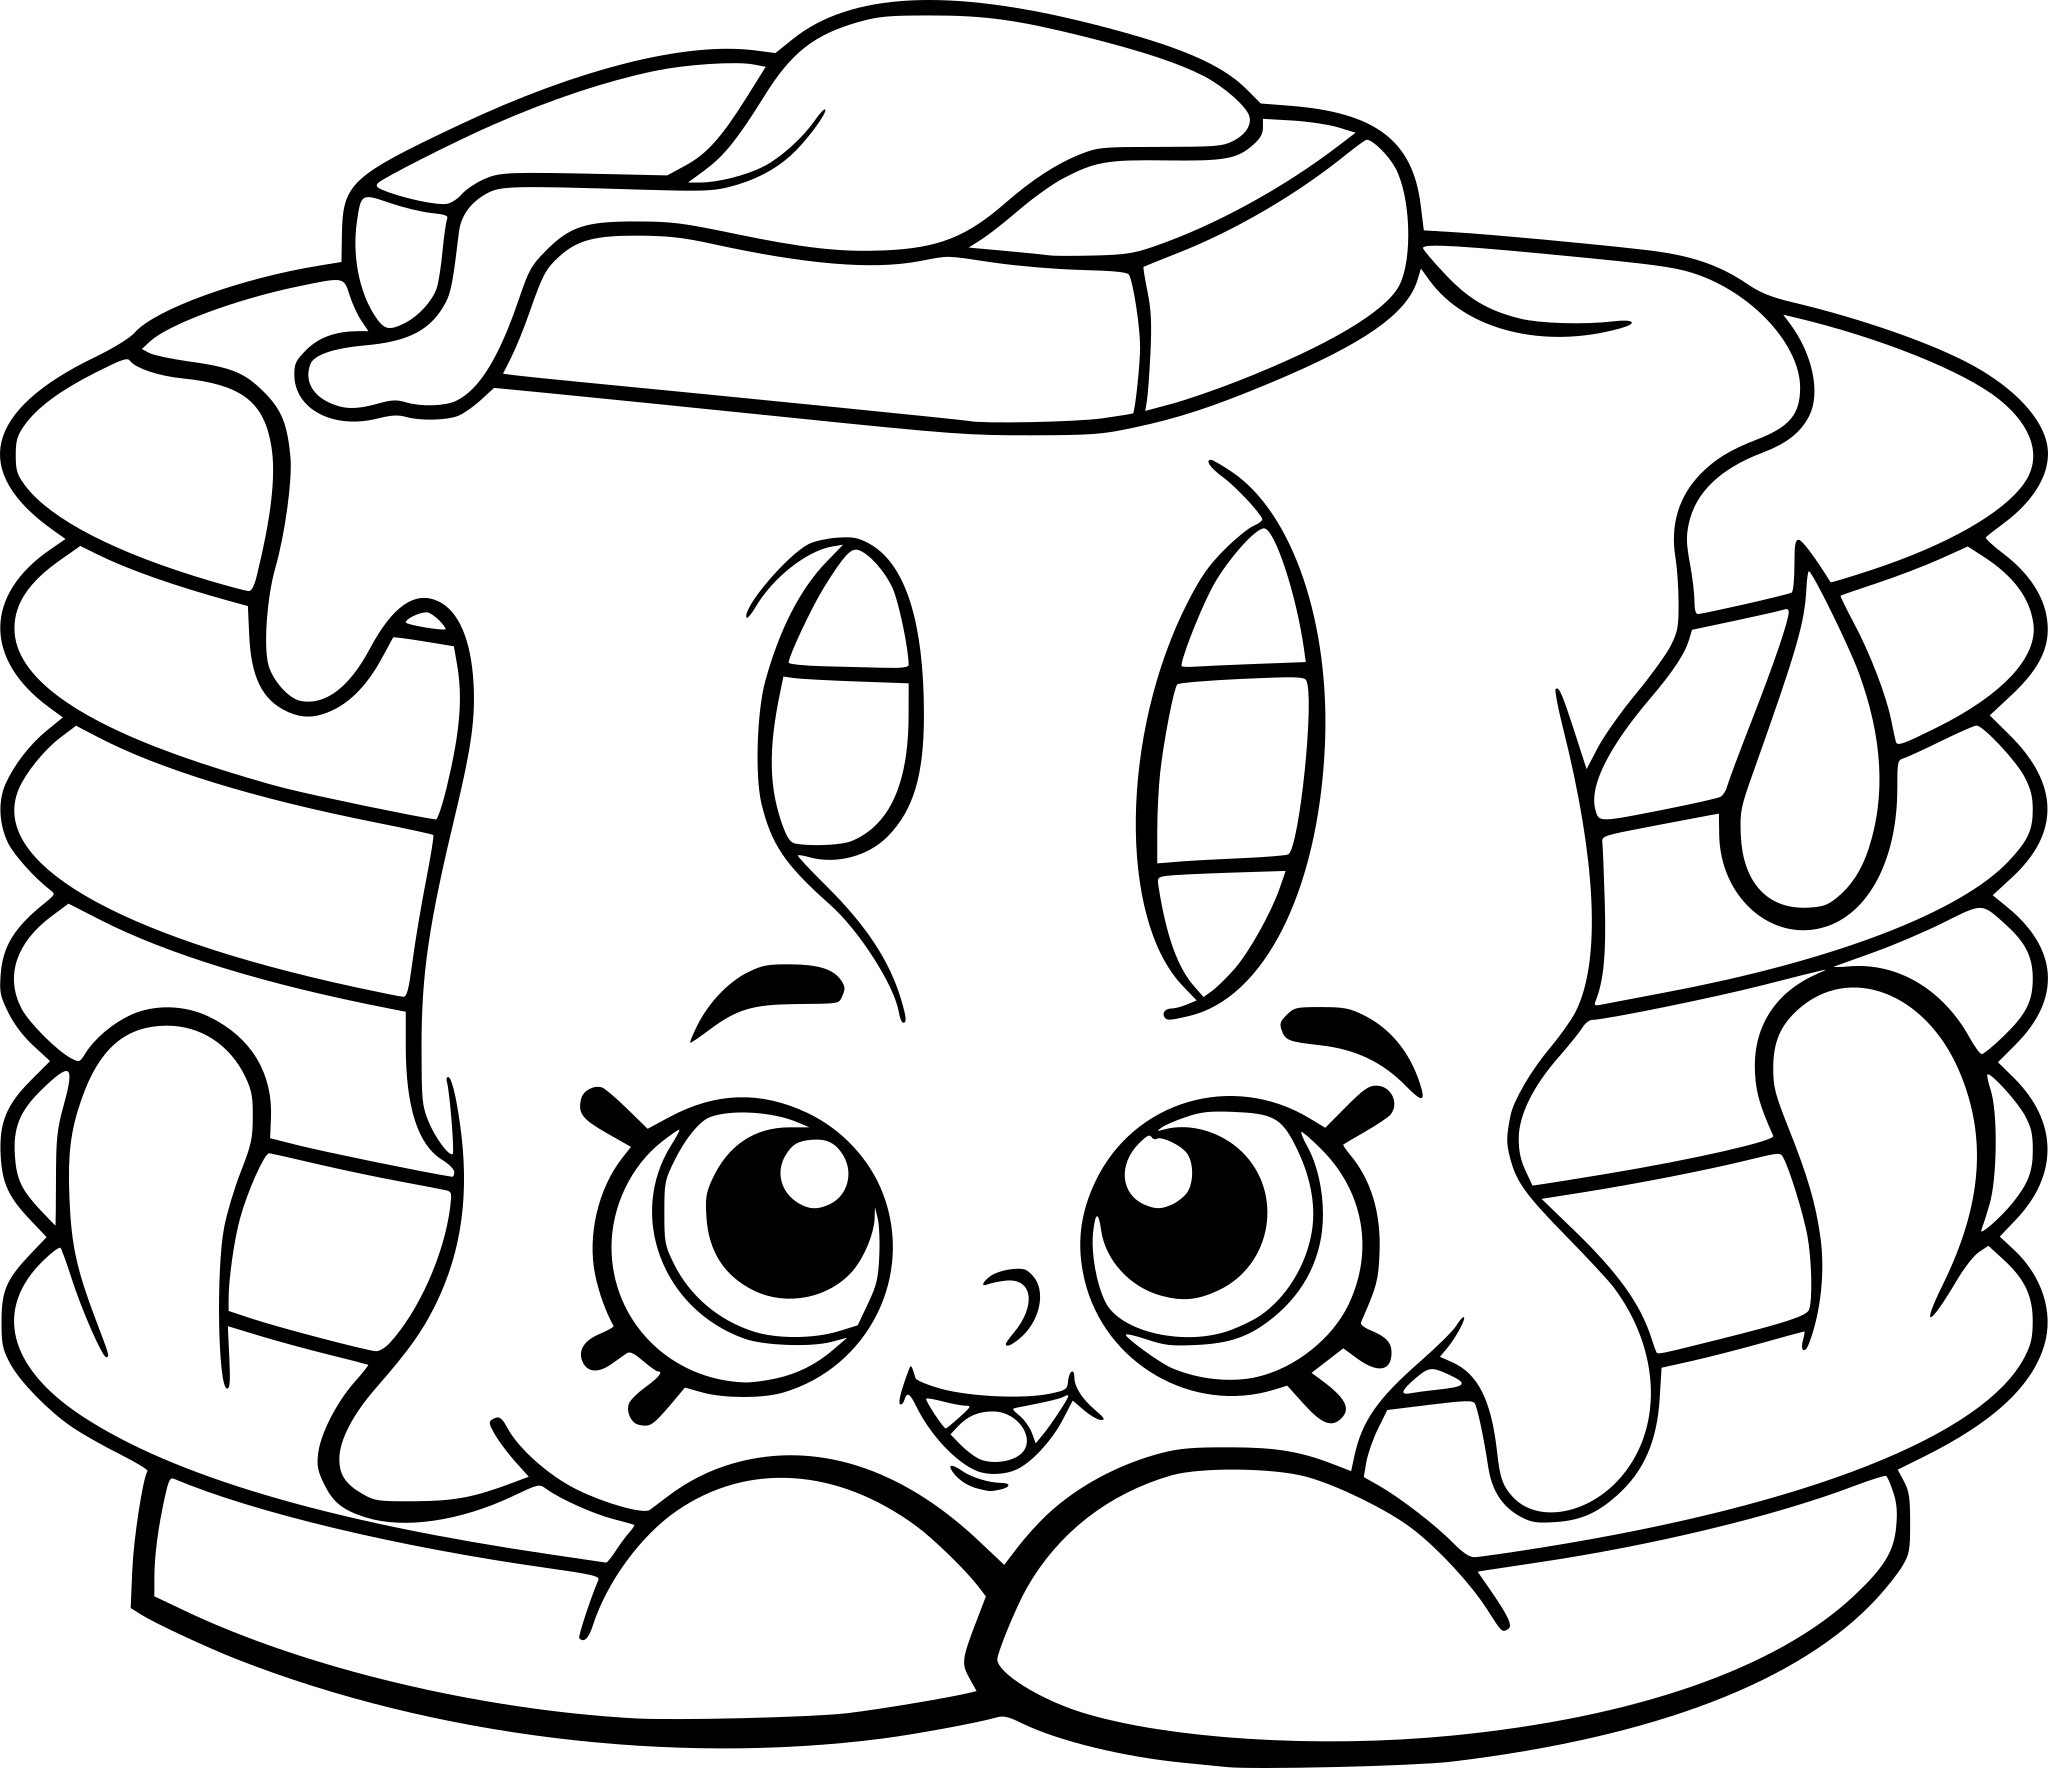 Free Printable Shopkins Coloring Pages - Coloring Pages For Kids - Shopkins Coloring Pages Printable Free